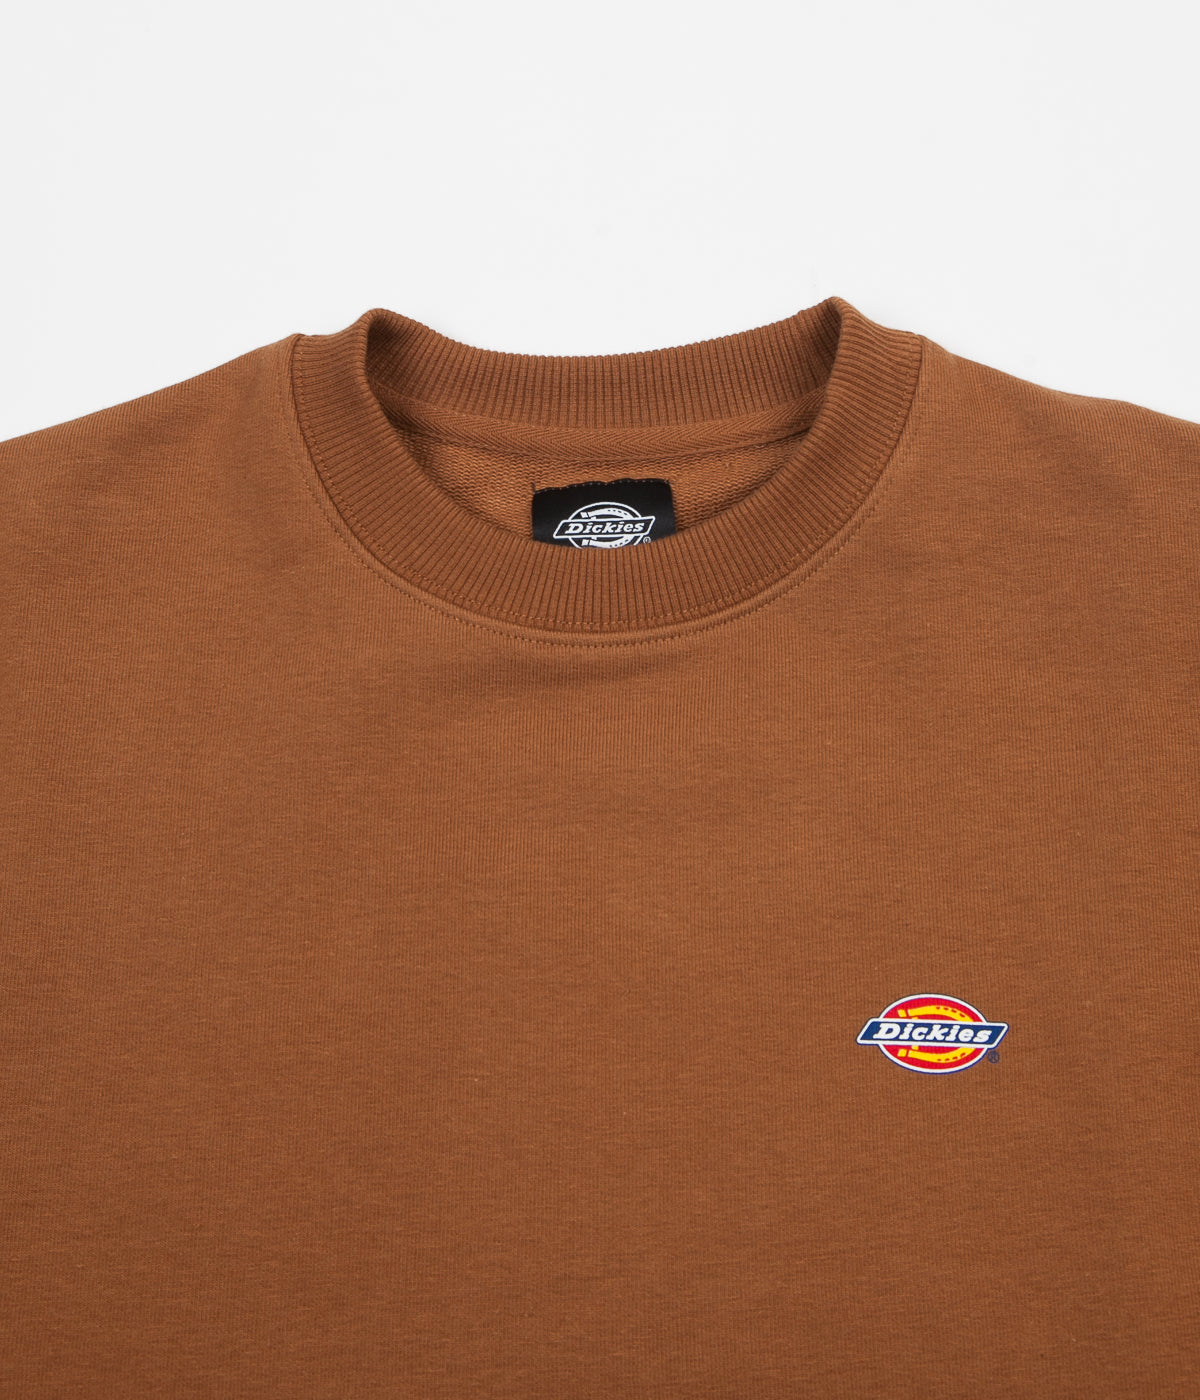 Dickies Seabrook Crewneck Sweatshirt - Brown Duck